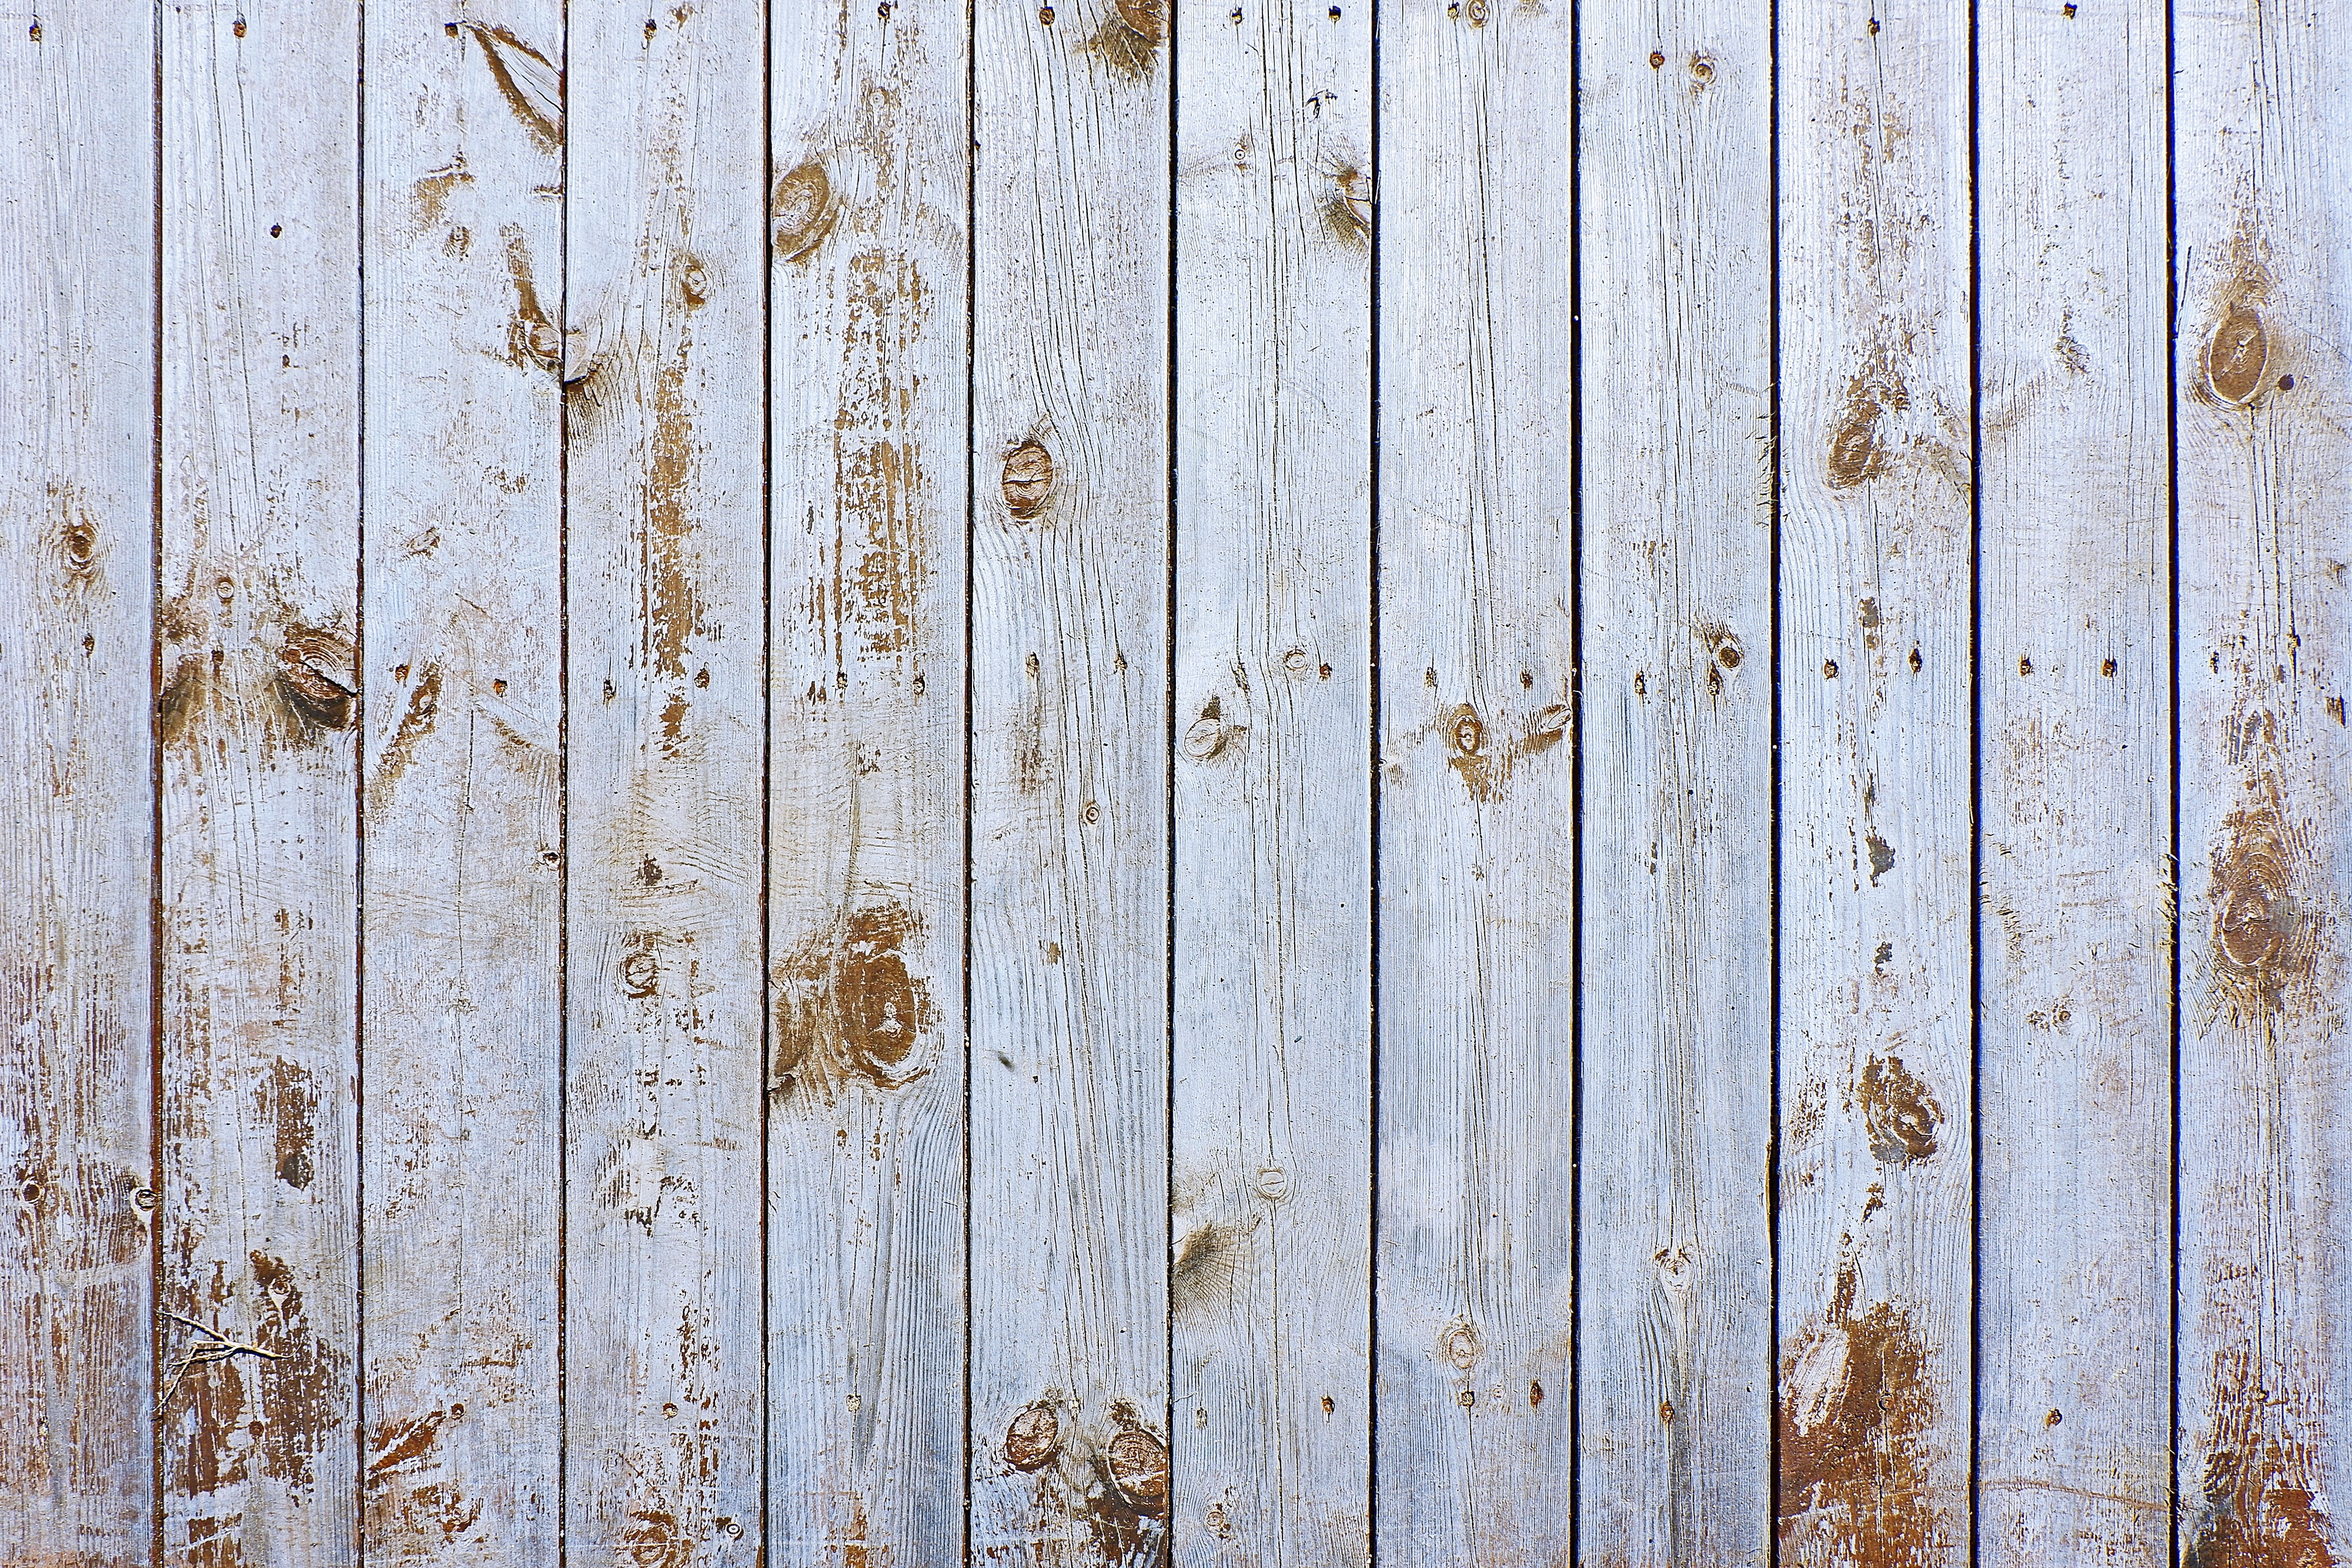 59350 download wallpaper Textures, Texture, Wood, Wooden, Surface, Planks, Board screensavers and pictures for free